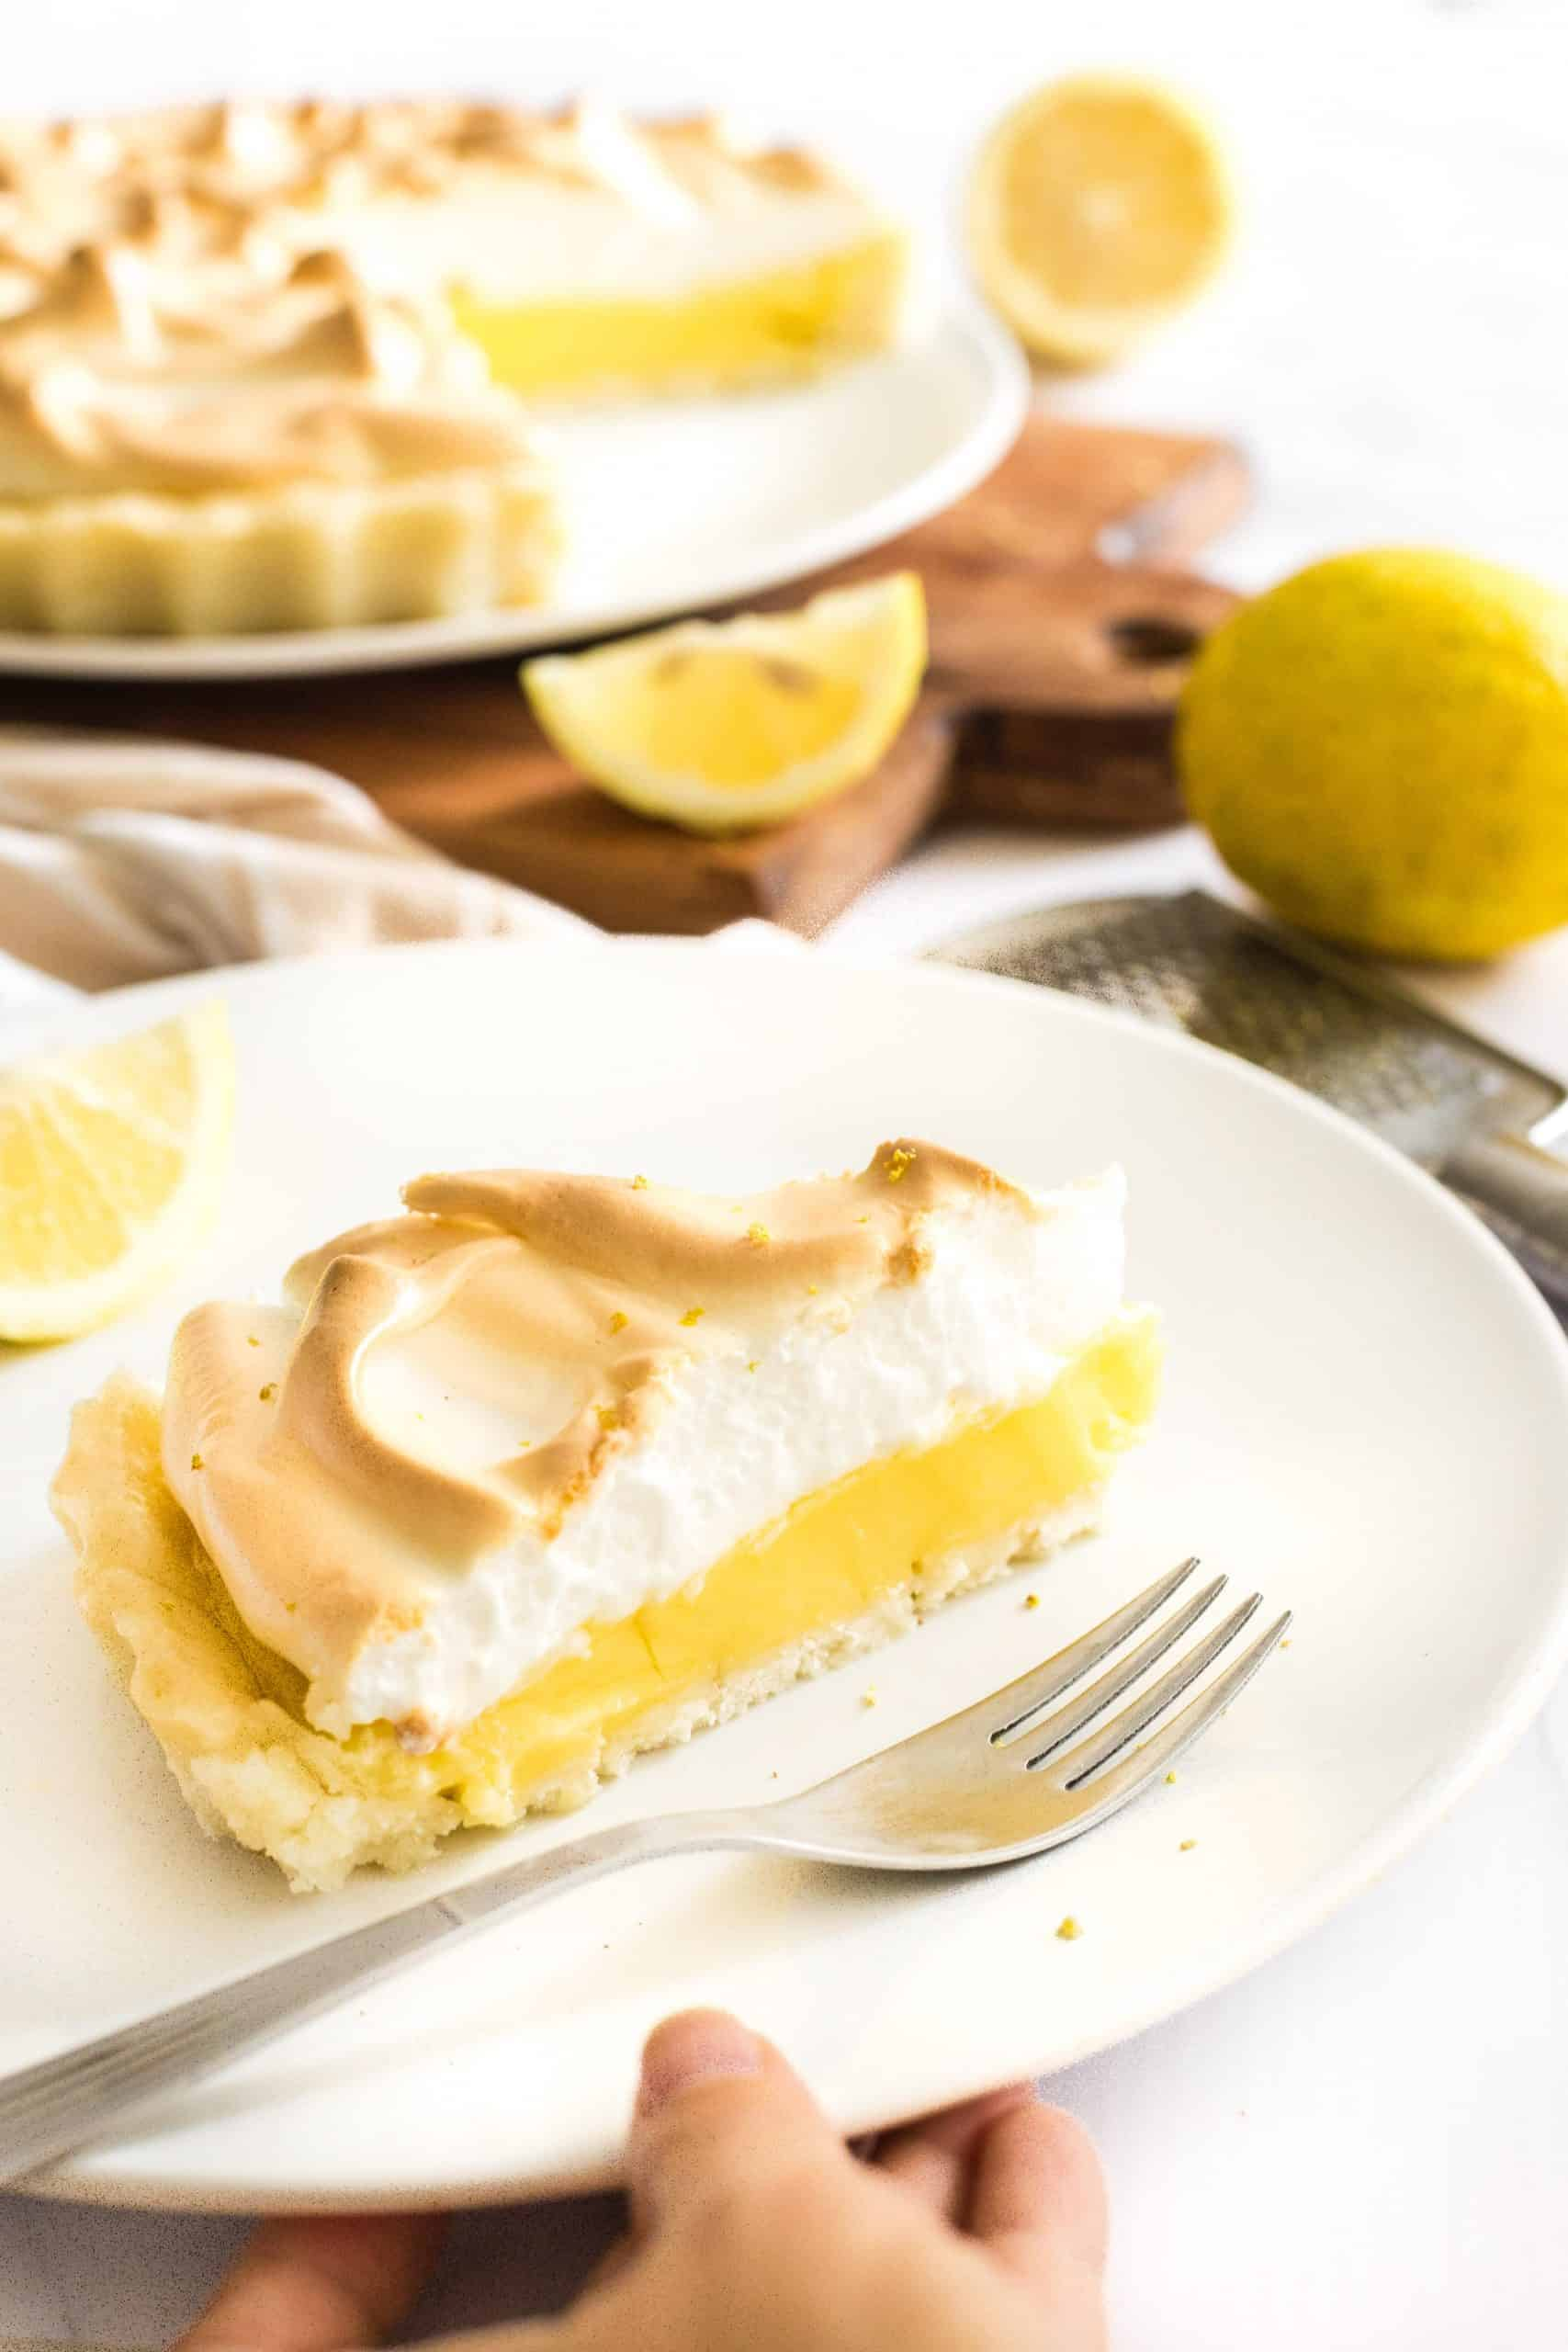 Holding onto a plate with a slice of lemon meringue pie.